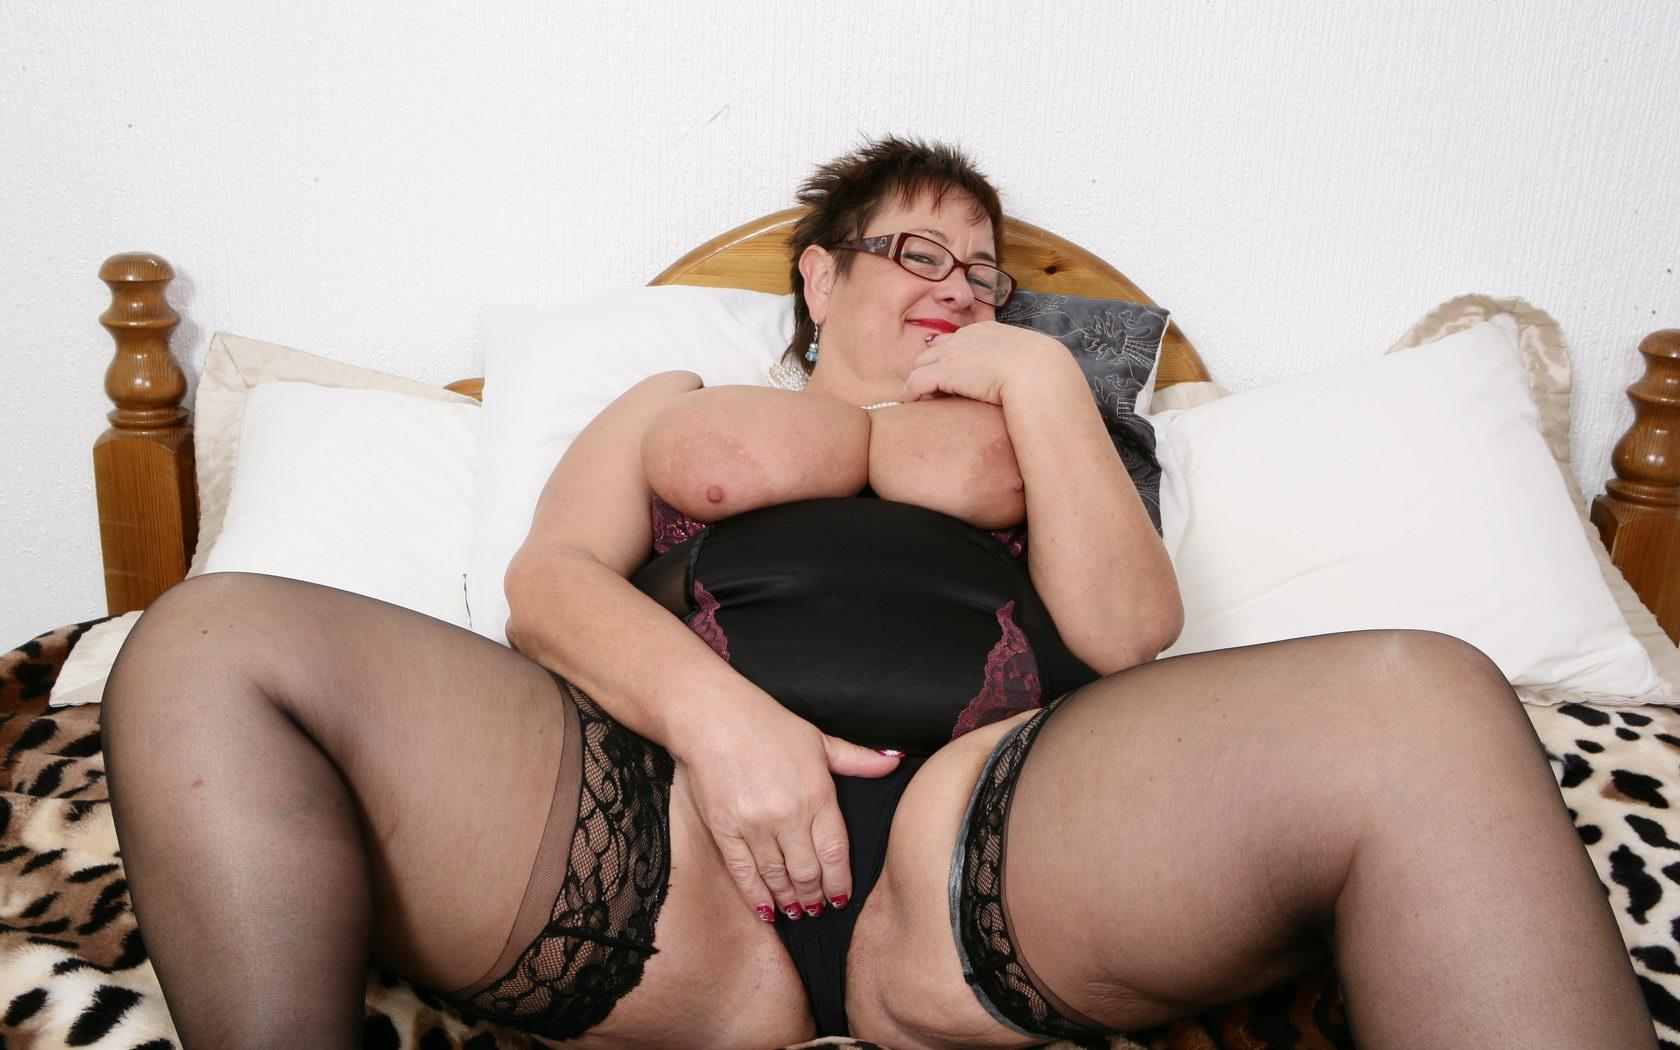 handsome grandmother i love to fuck likes to have hardcore sex